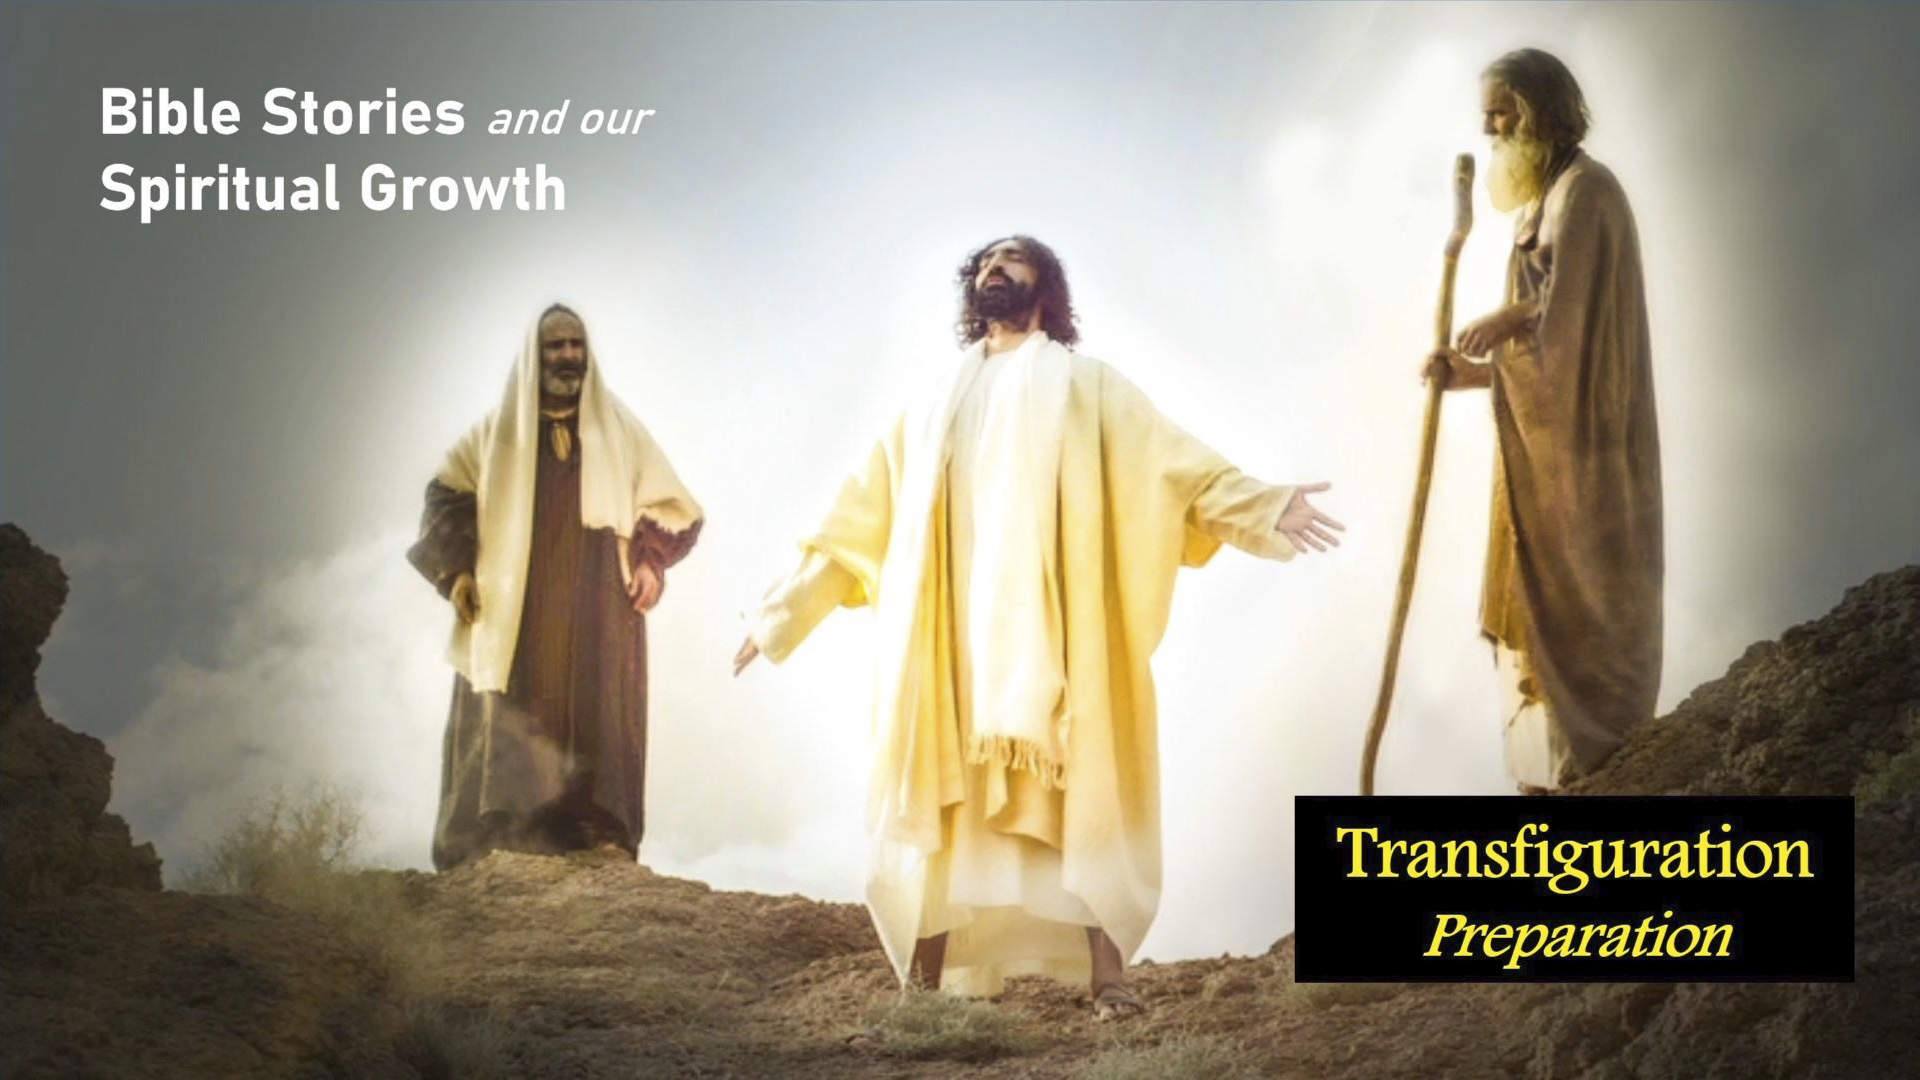 The Transfiguration – Preparation | Bible Stories and Our Spiritual Growth